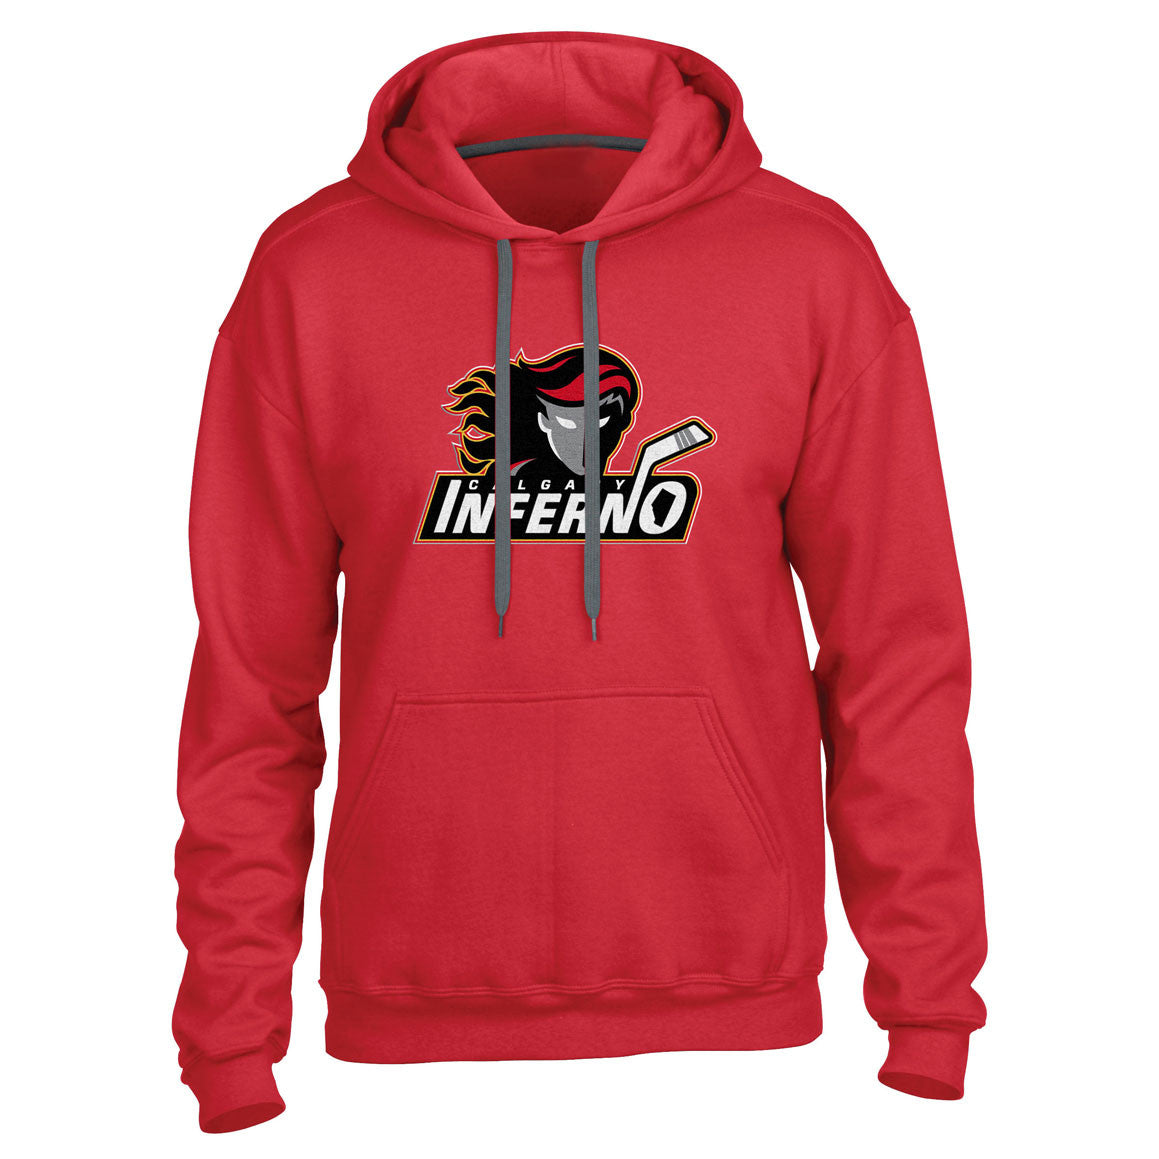 Calgary Inferno Men's Red Pullover Hoody - shop.realsports